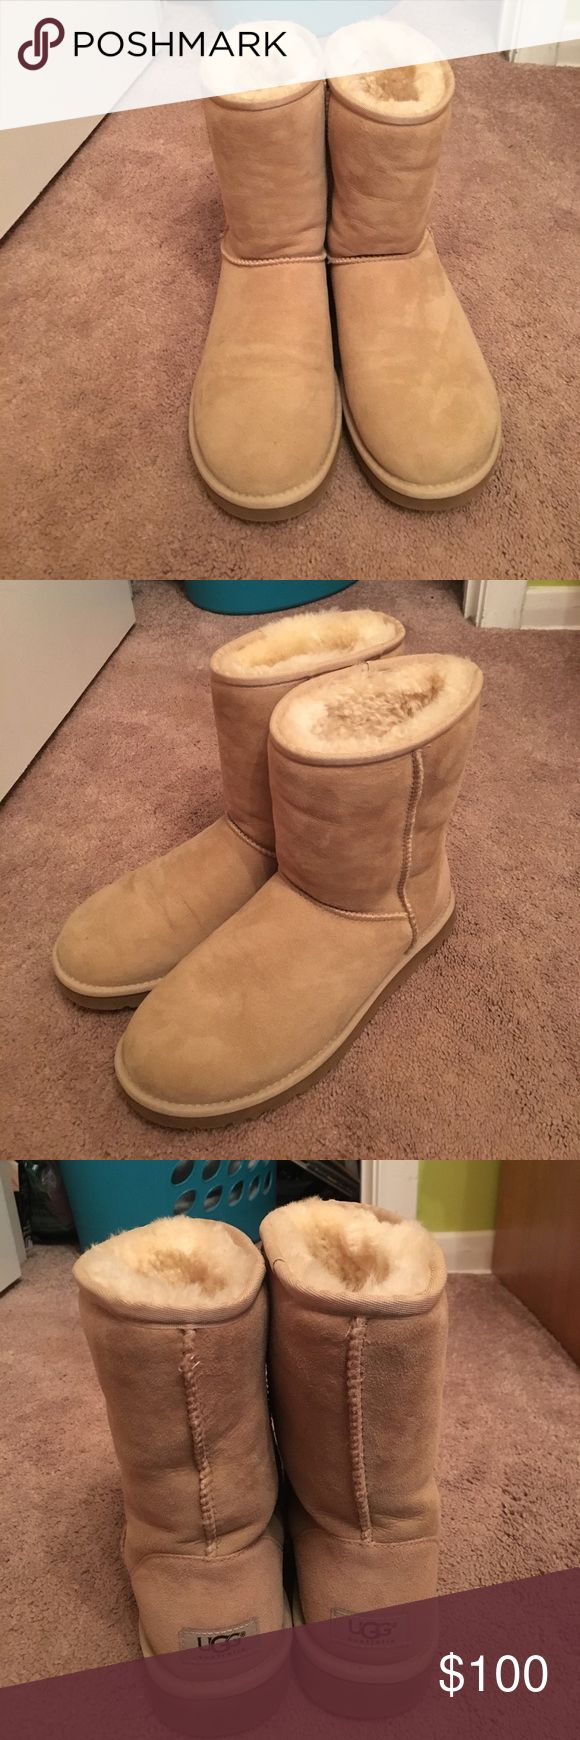 Authentic Sand Classic Short Uggs Authentic uggs, never worn and in new condition. Does not come with box or original tags as I took them off thinking I'd keep. I'm moving soon and need to clear out my closet! Make an offer💕 UGG Shoes Winter & Rain Boots